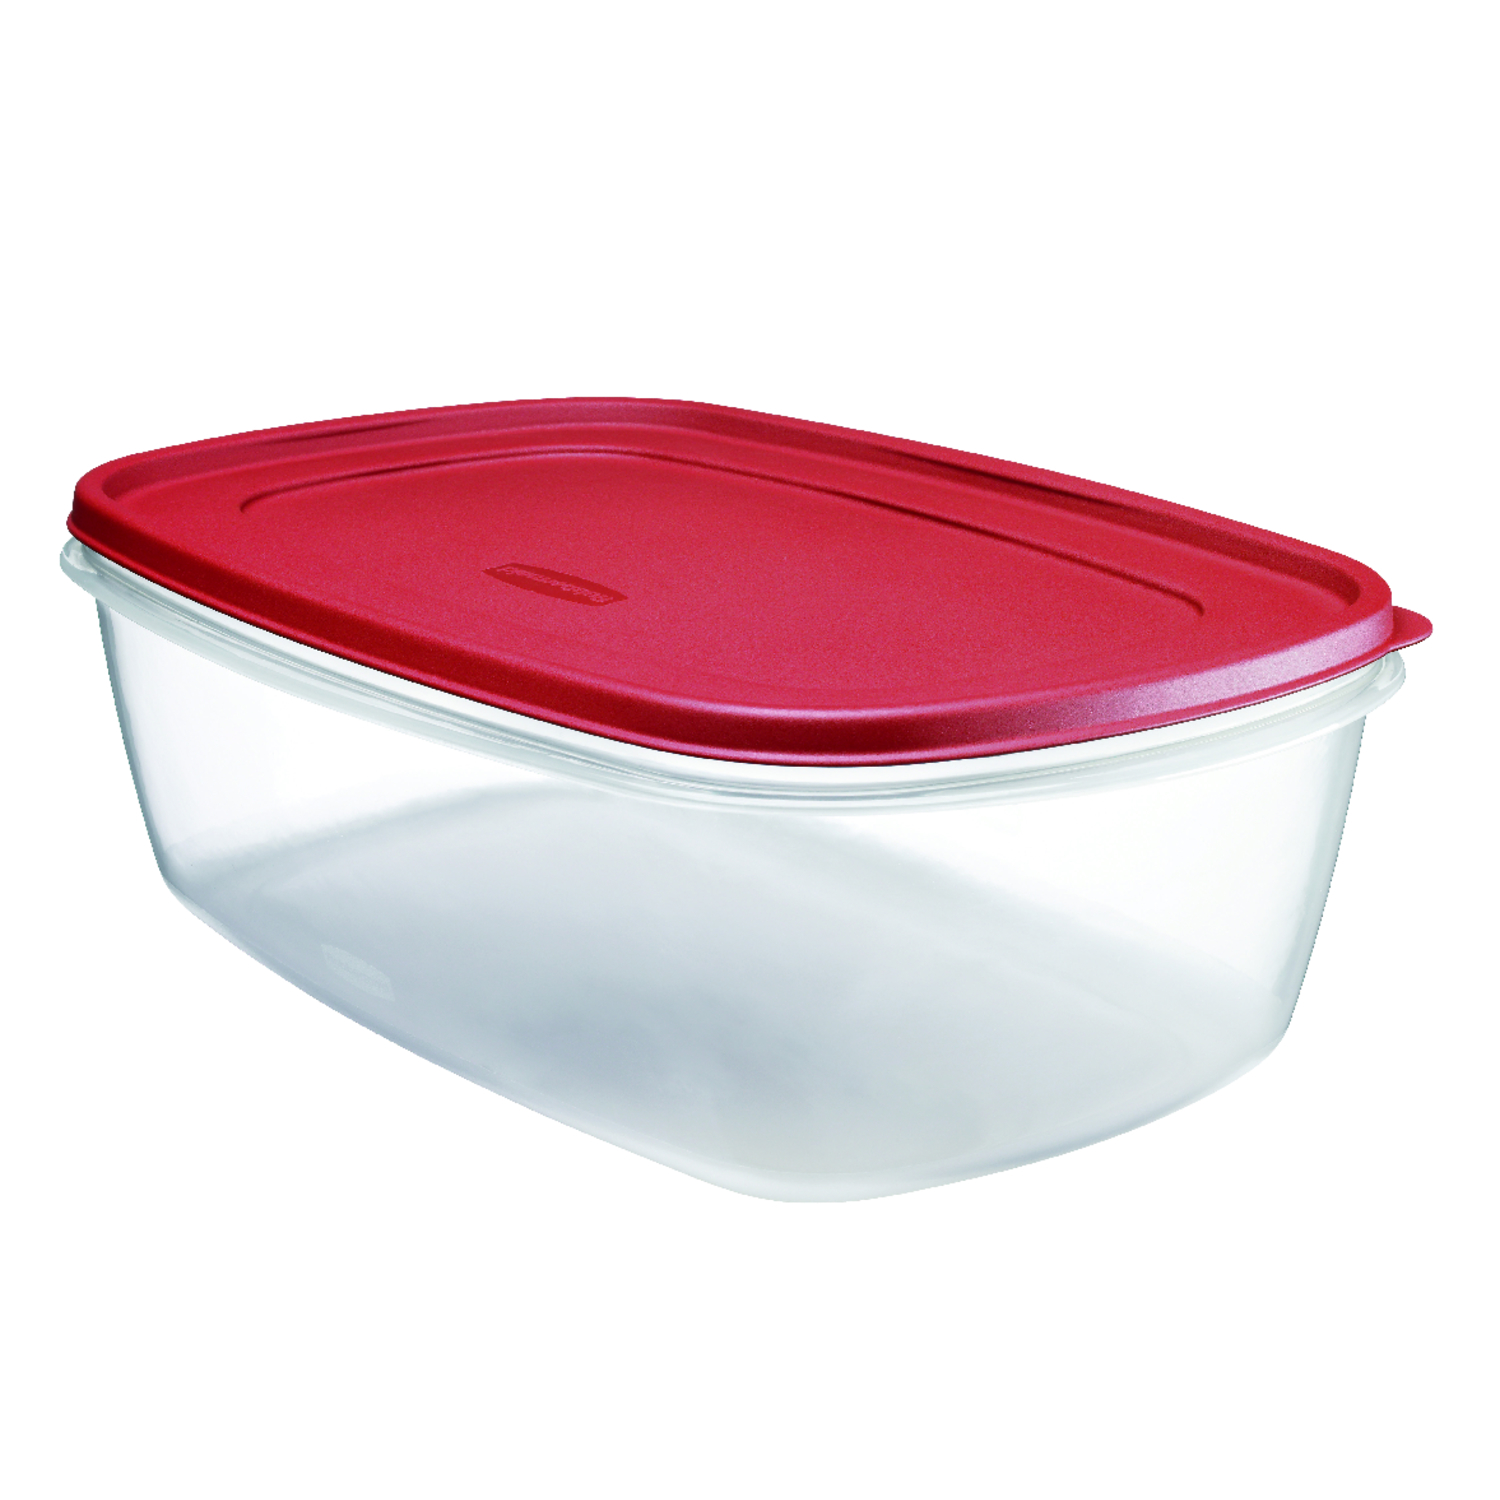 Rubbermaid Food Storage Container 2.5 gal.  sc 1 st  Ace Hardware & Rubbermaid Food Storage Container 2.5 gal. - Ace Hardware